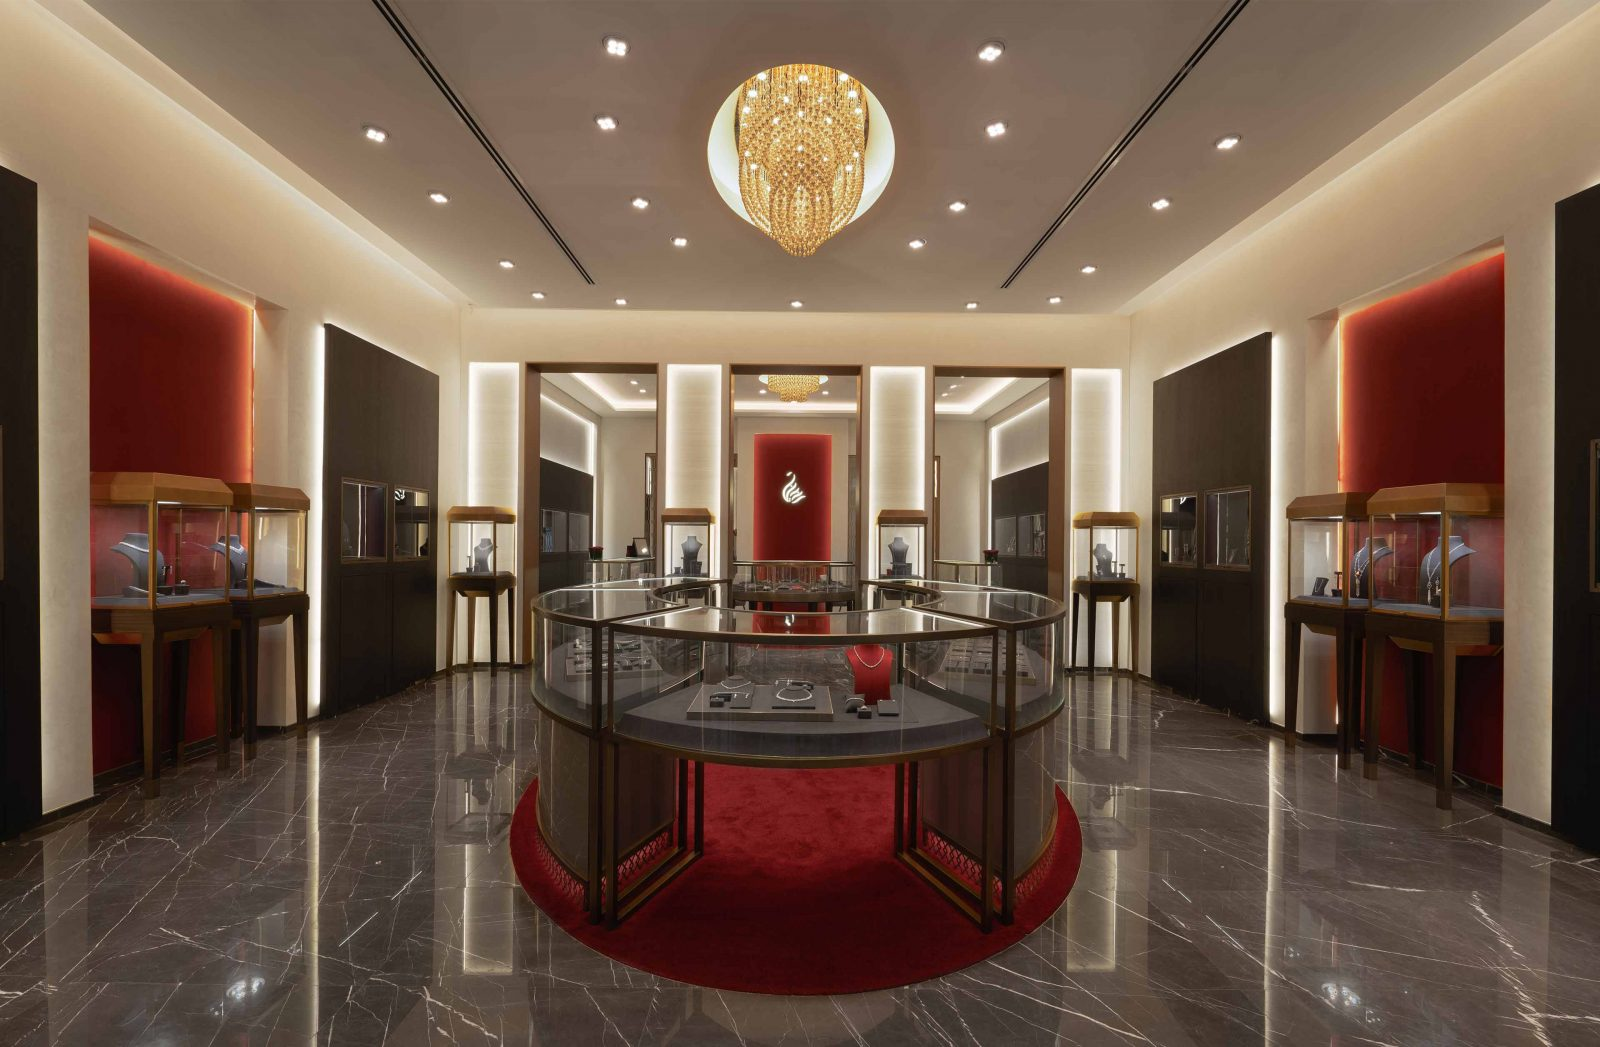 Architectural Lighting Design Luxury Retail Red Brown Interior Jewellery Store Integrated Illumination Ceiling Walls Merchandise Cases Counters Studio N